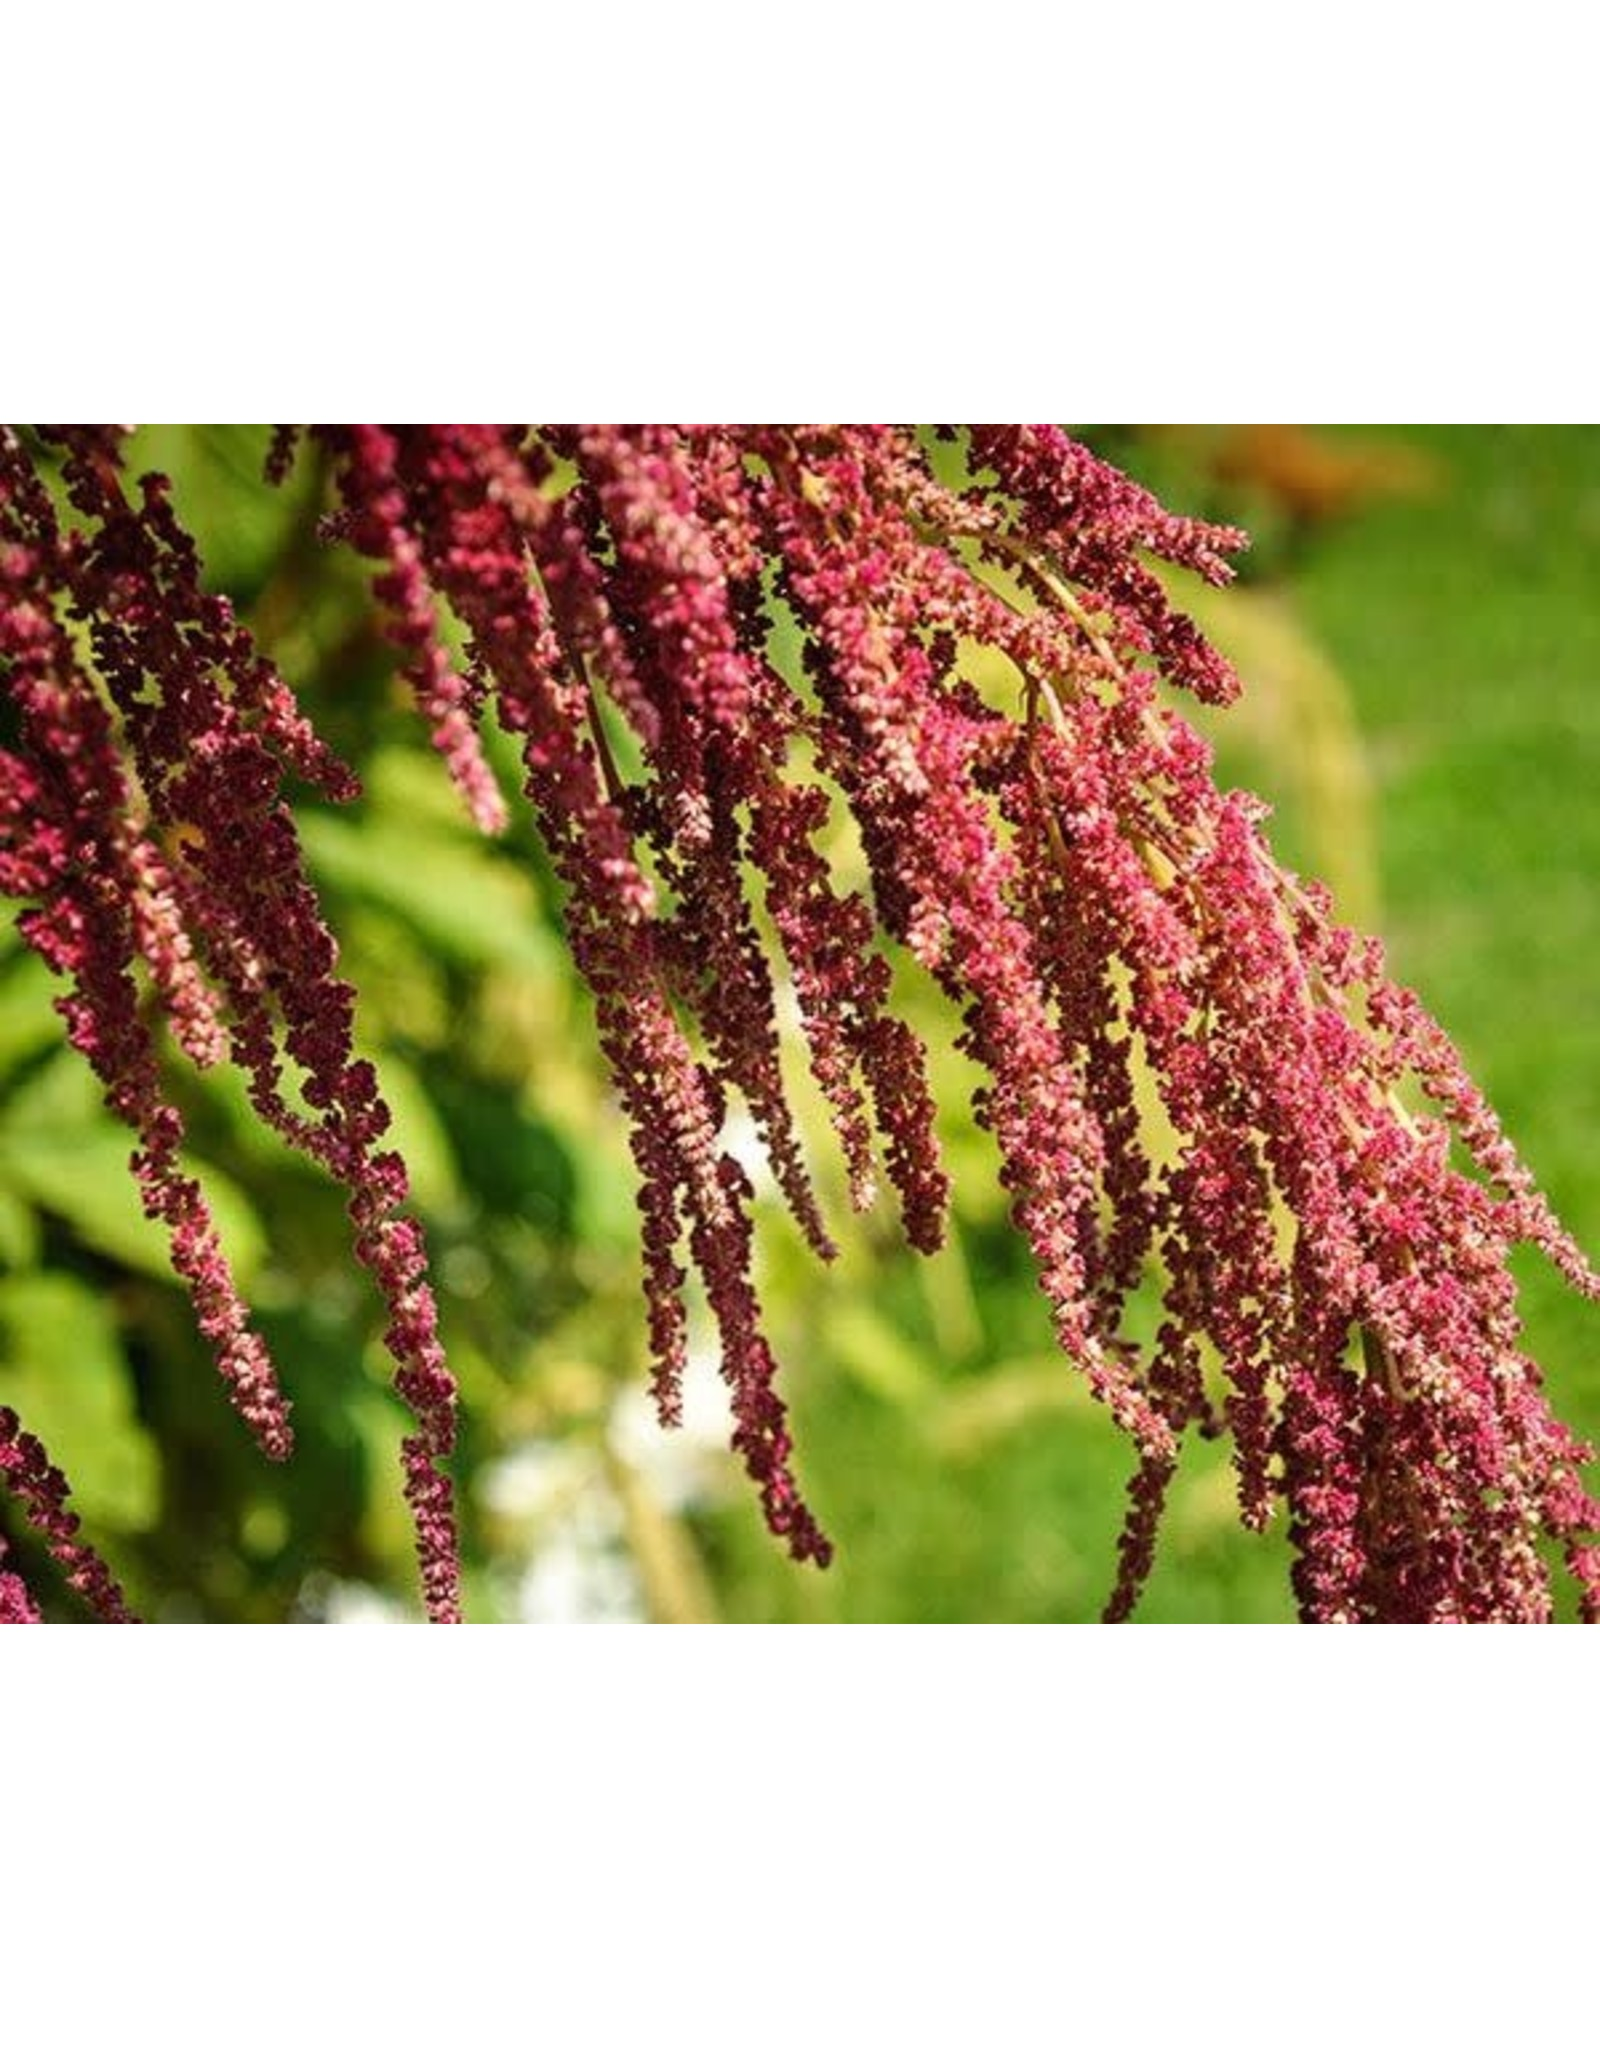 Seeds - Love Lies Bleeding, Amaranth